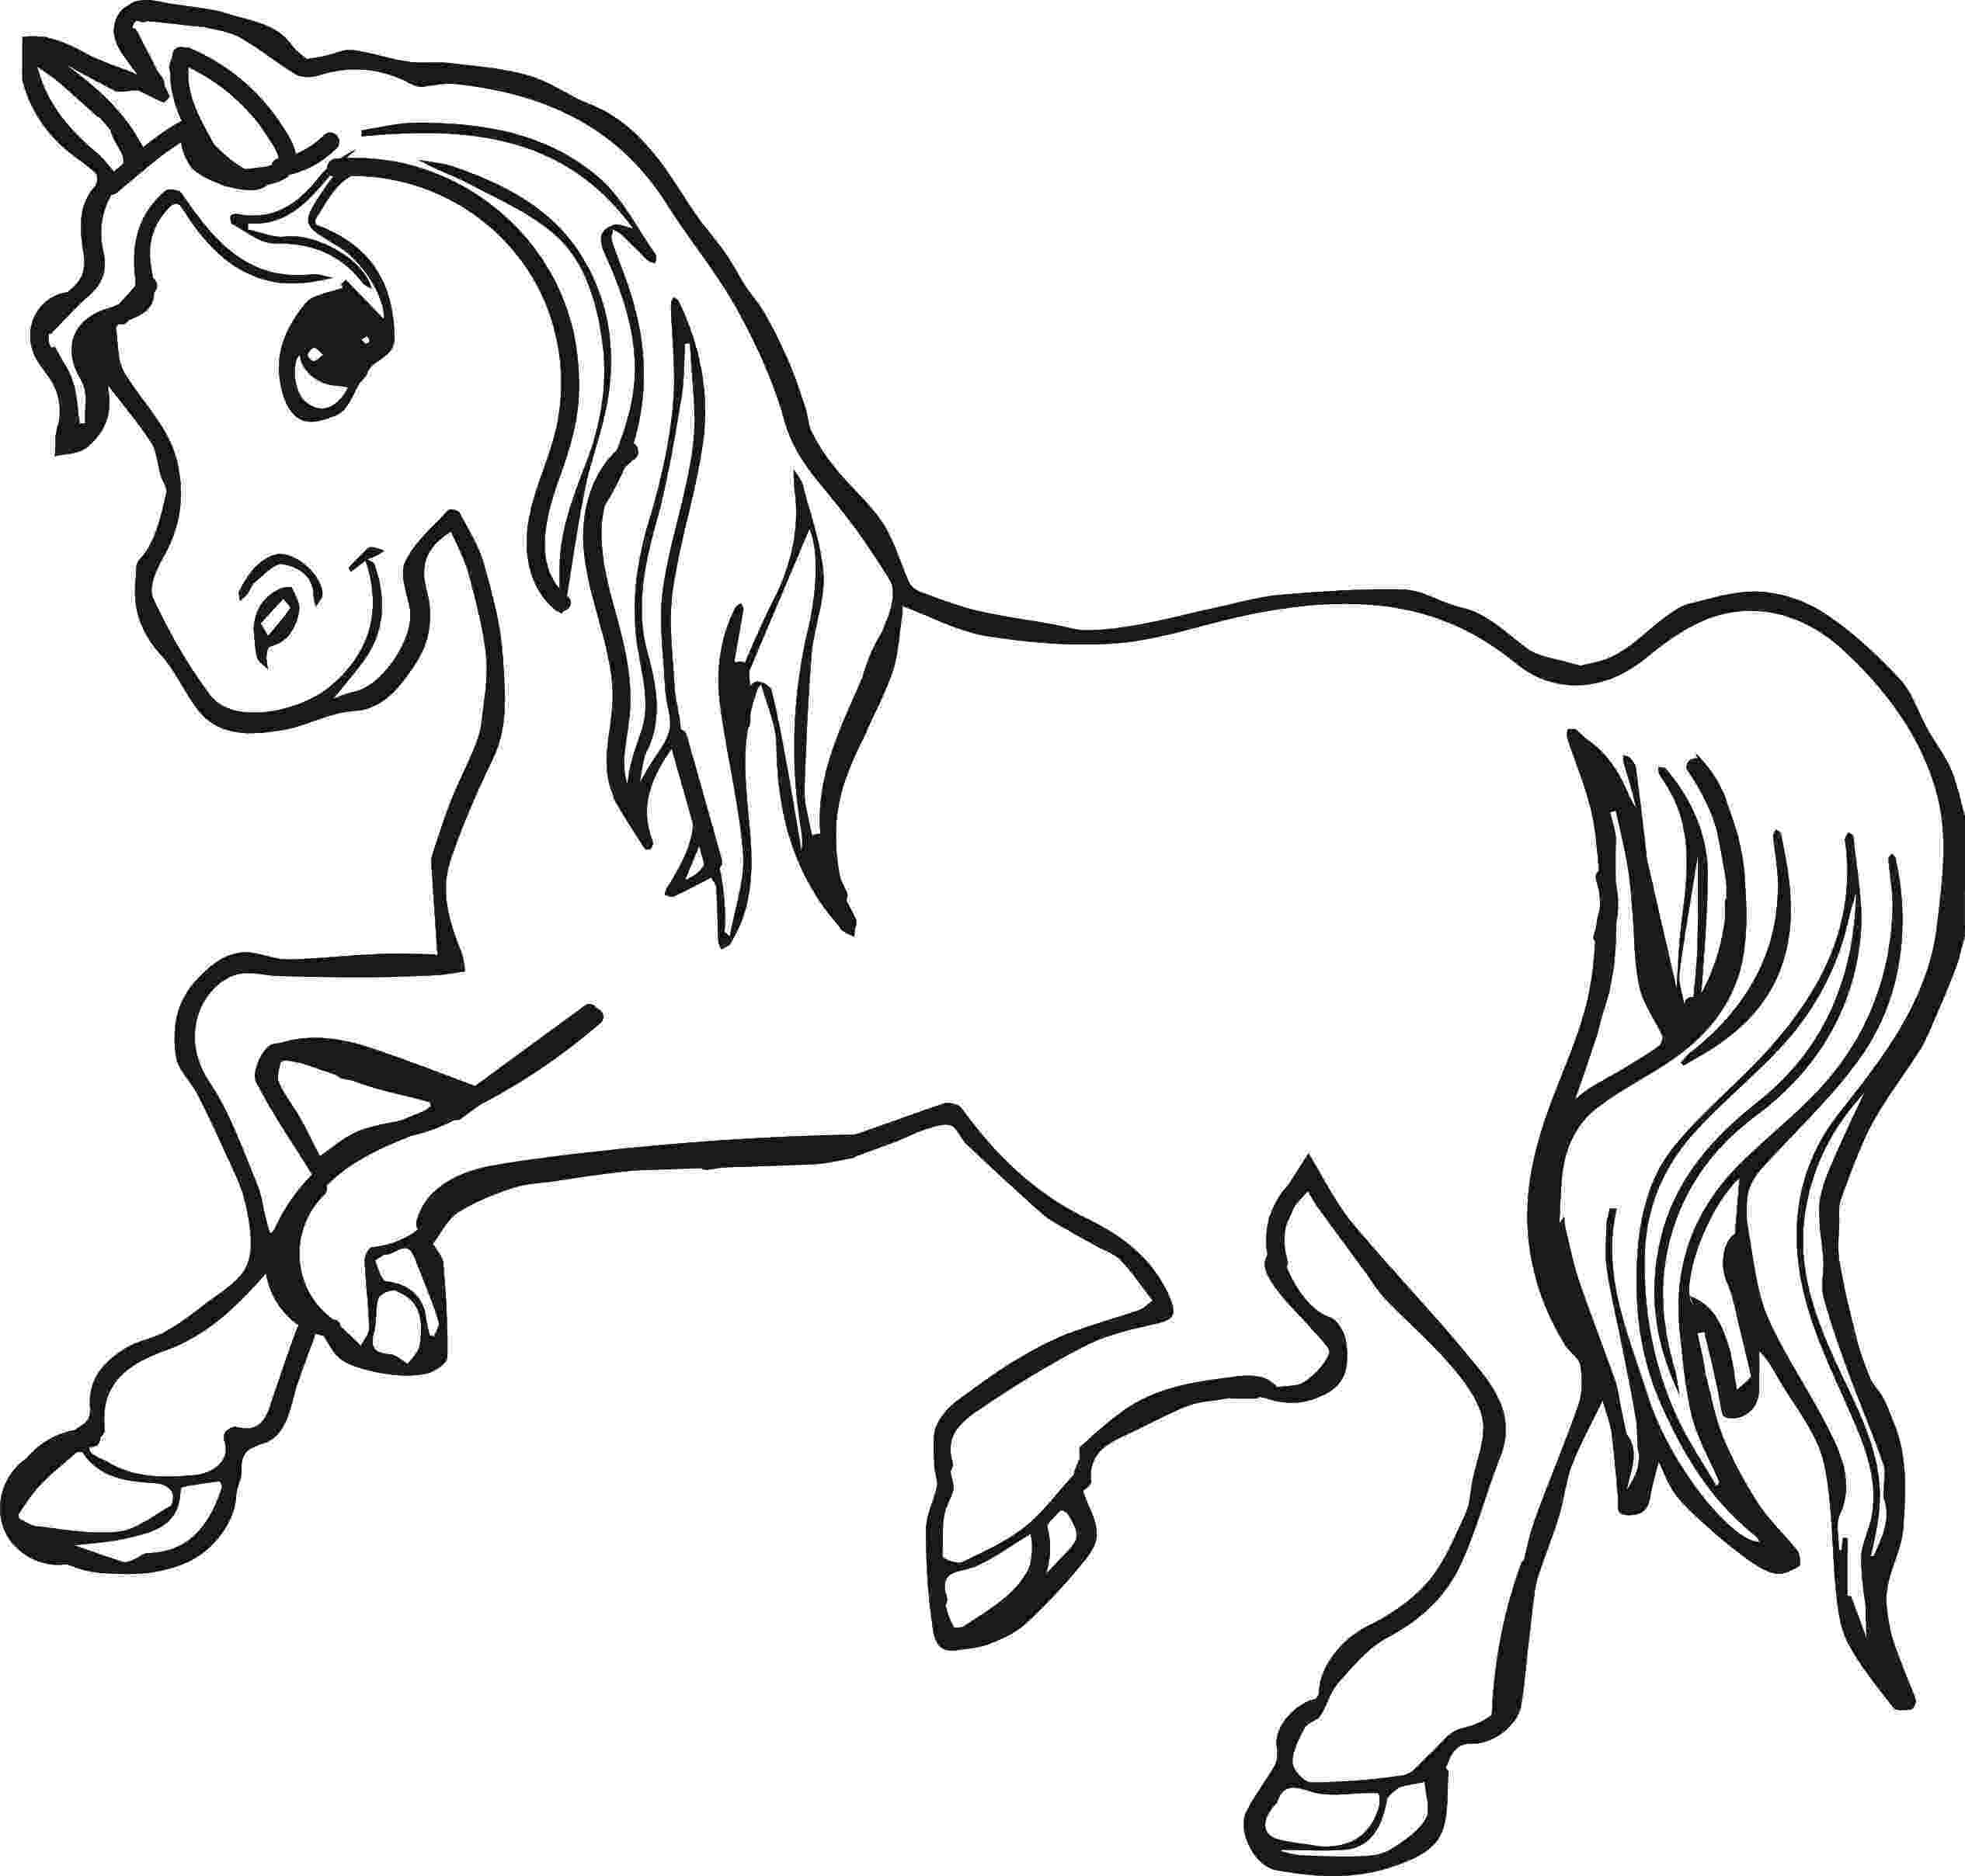 coloring horses horse coloring pages for kids coloring pages for kids horses coloring